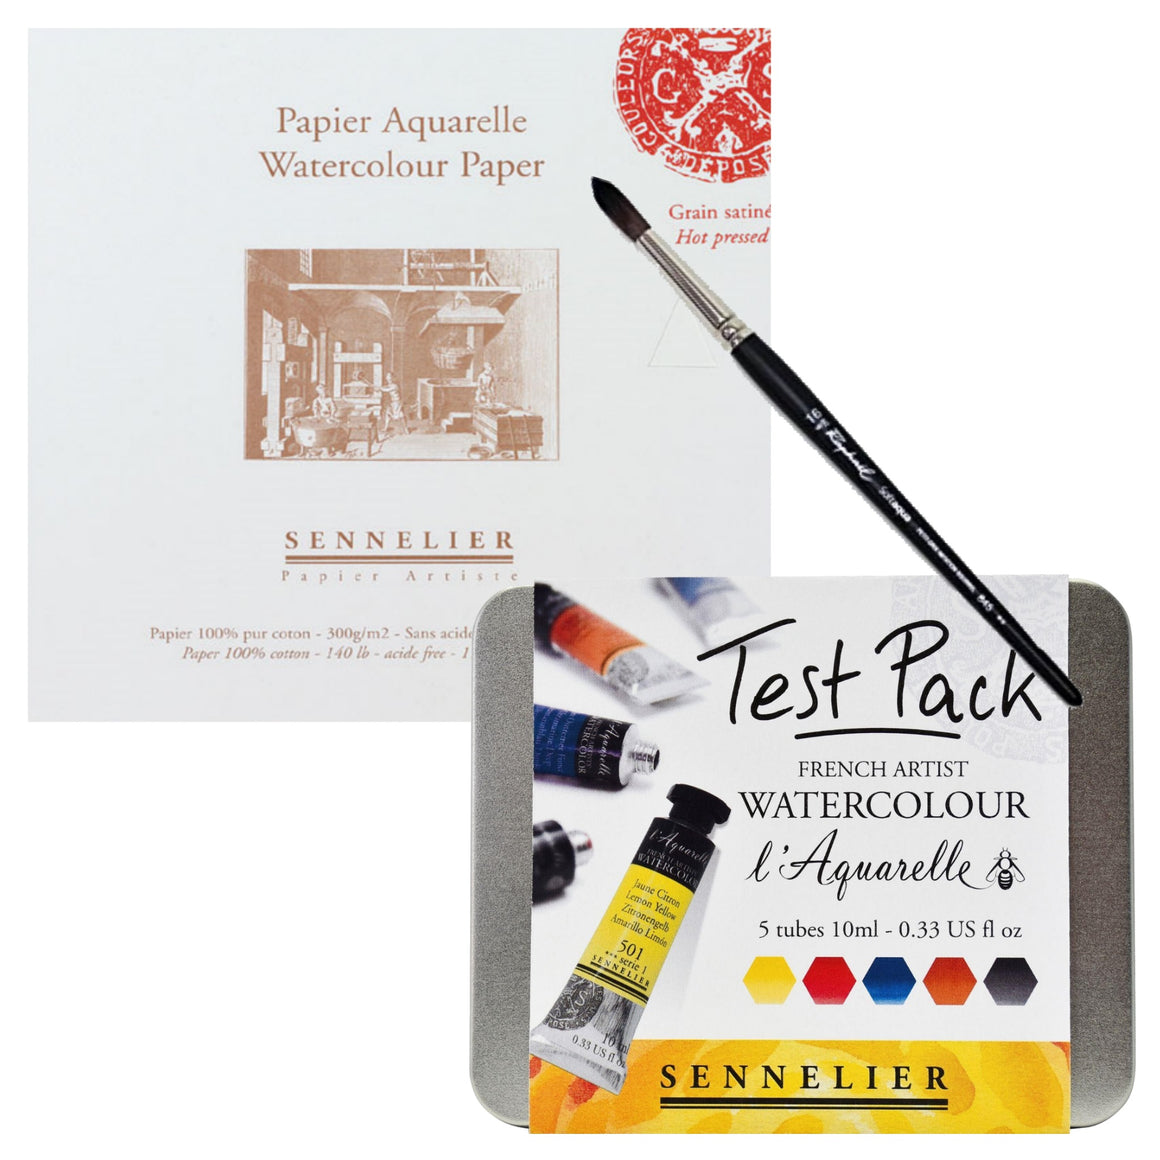 1x Sennelier L'Aquarelle Test Pack - 5 tubes of 10ml 1x Sennelier Watercolour Block - 10 x 15cm 1x Raphael Round Brush - 16